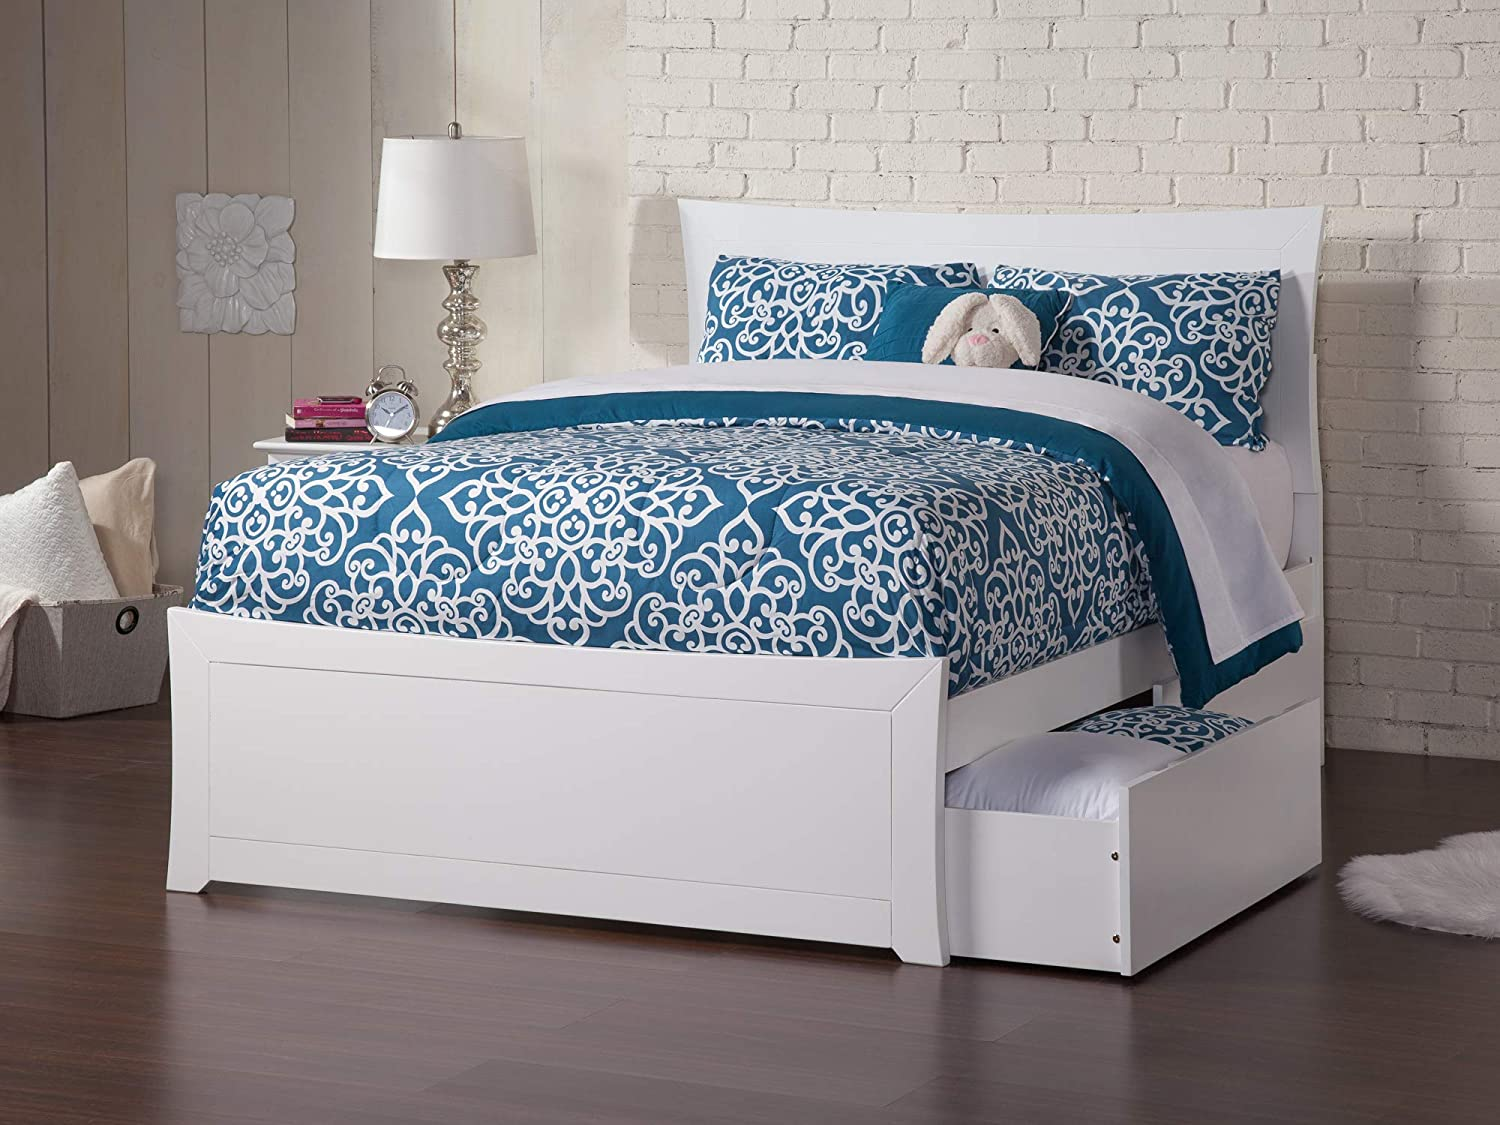 Atlantic Furniture AR9036112 Metro Platform Bed with Matching Foot Board and 2 Urban Bed Drawers, Full, White